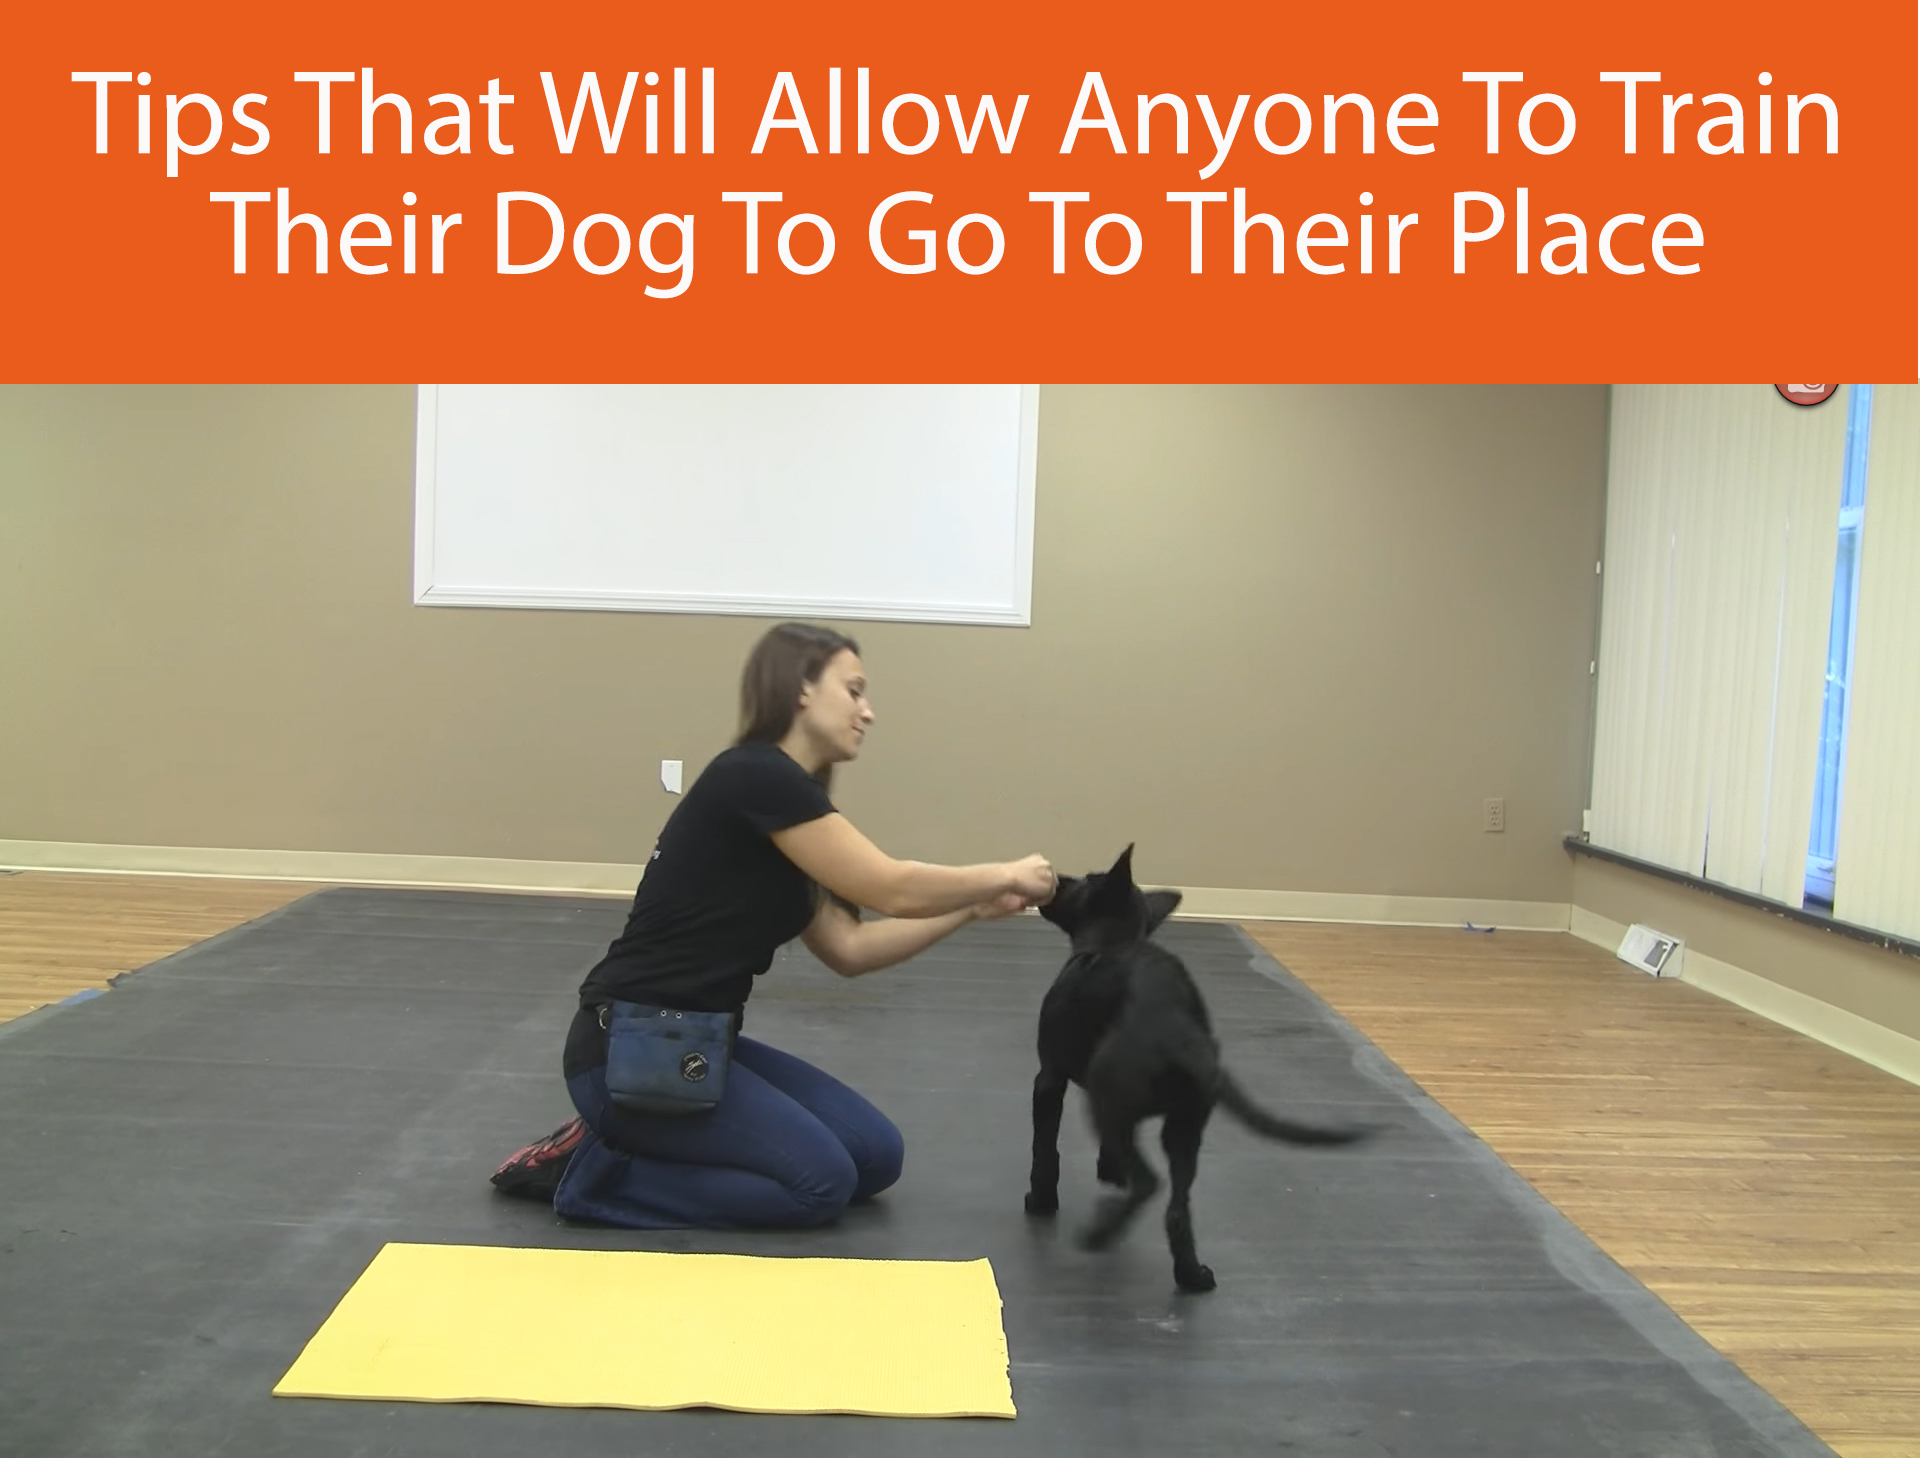 Tips That Will Allow Anyone To Train Their Dog To Go To Their Place